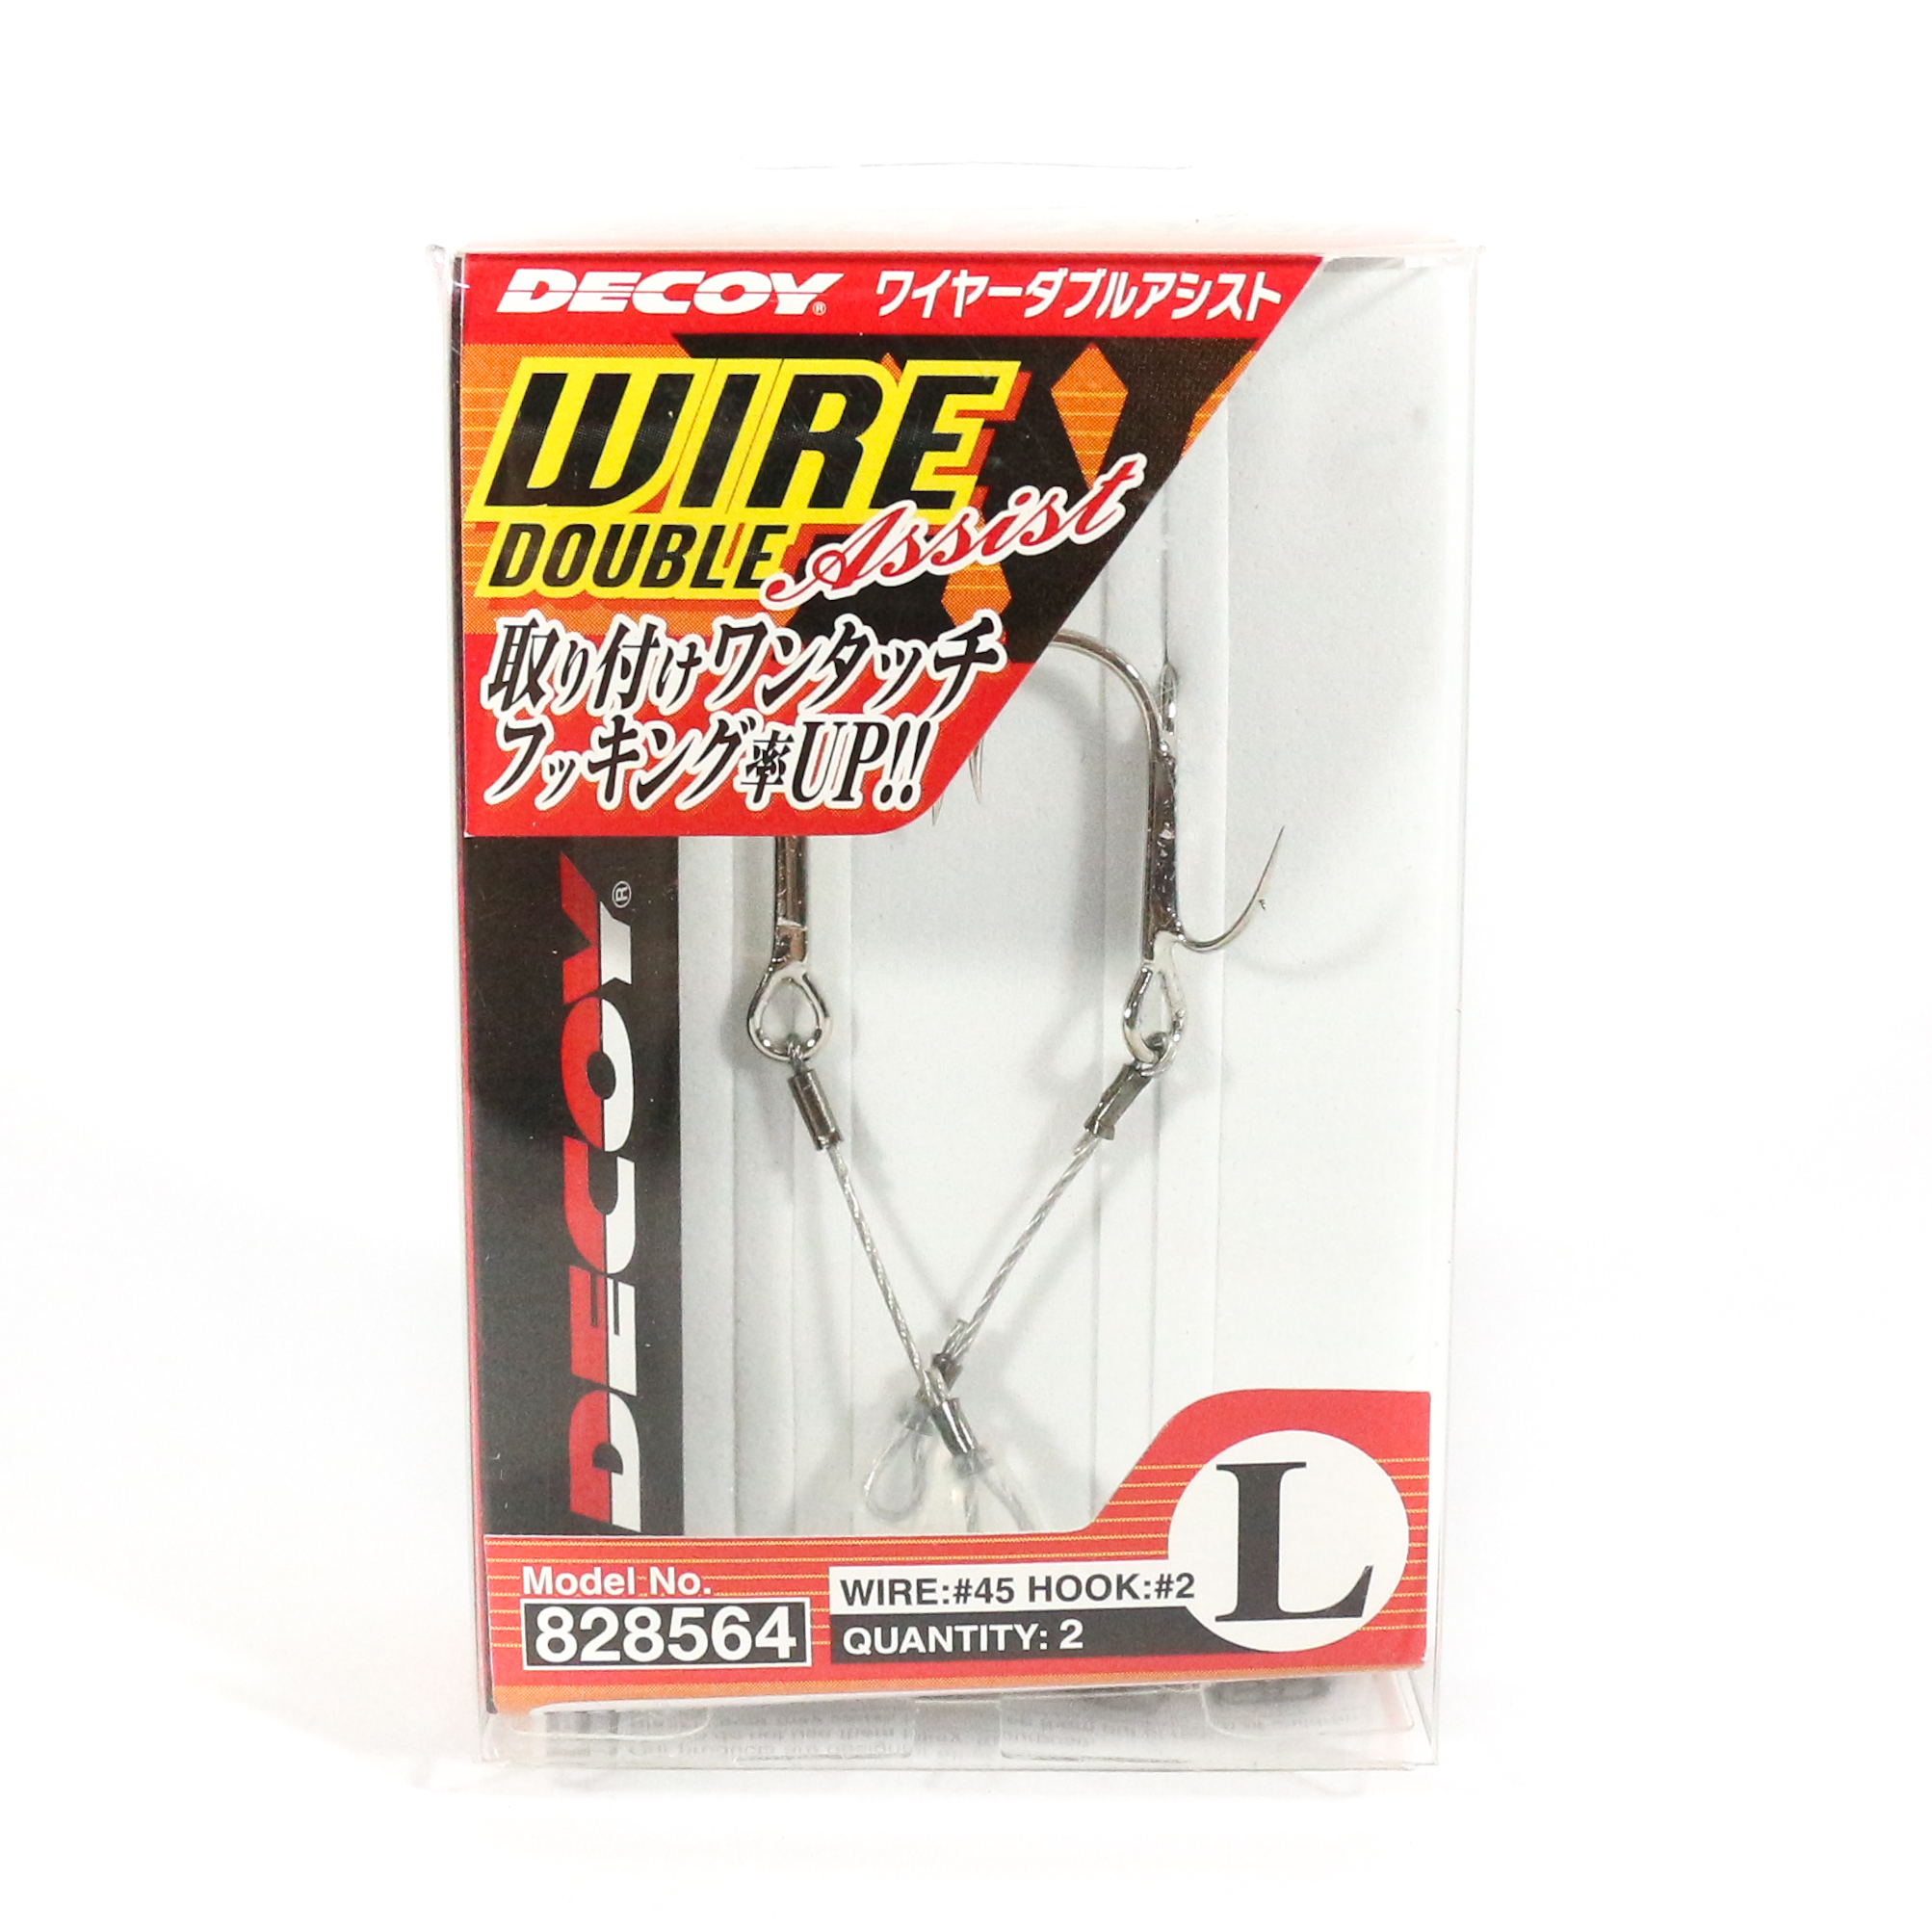 Decoy WA-51 Wire Double Assist for Soft Lure Size L (8564)